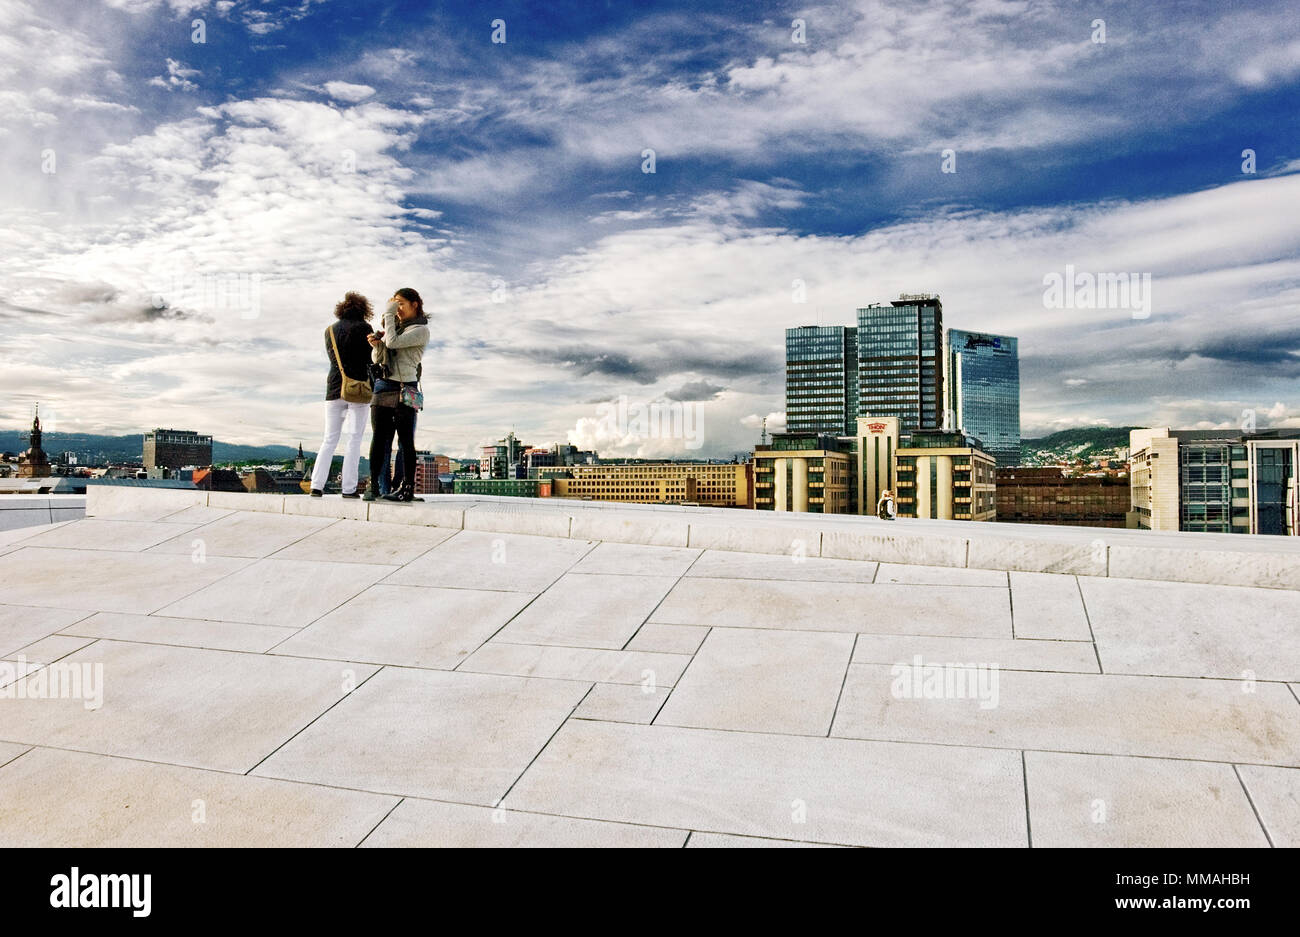 Norway - Oslo, Opera House area Stock Photo